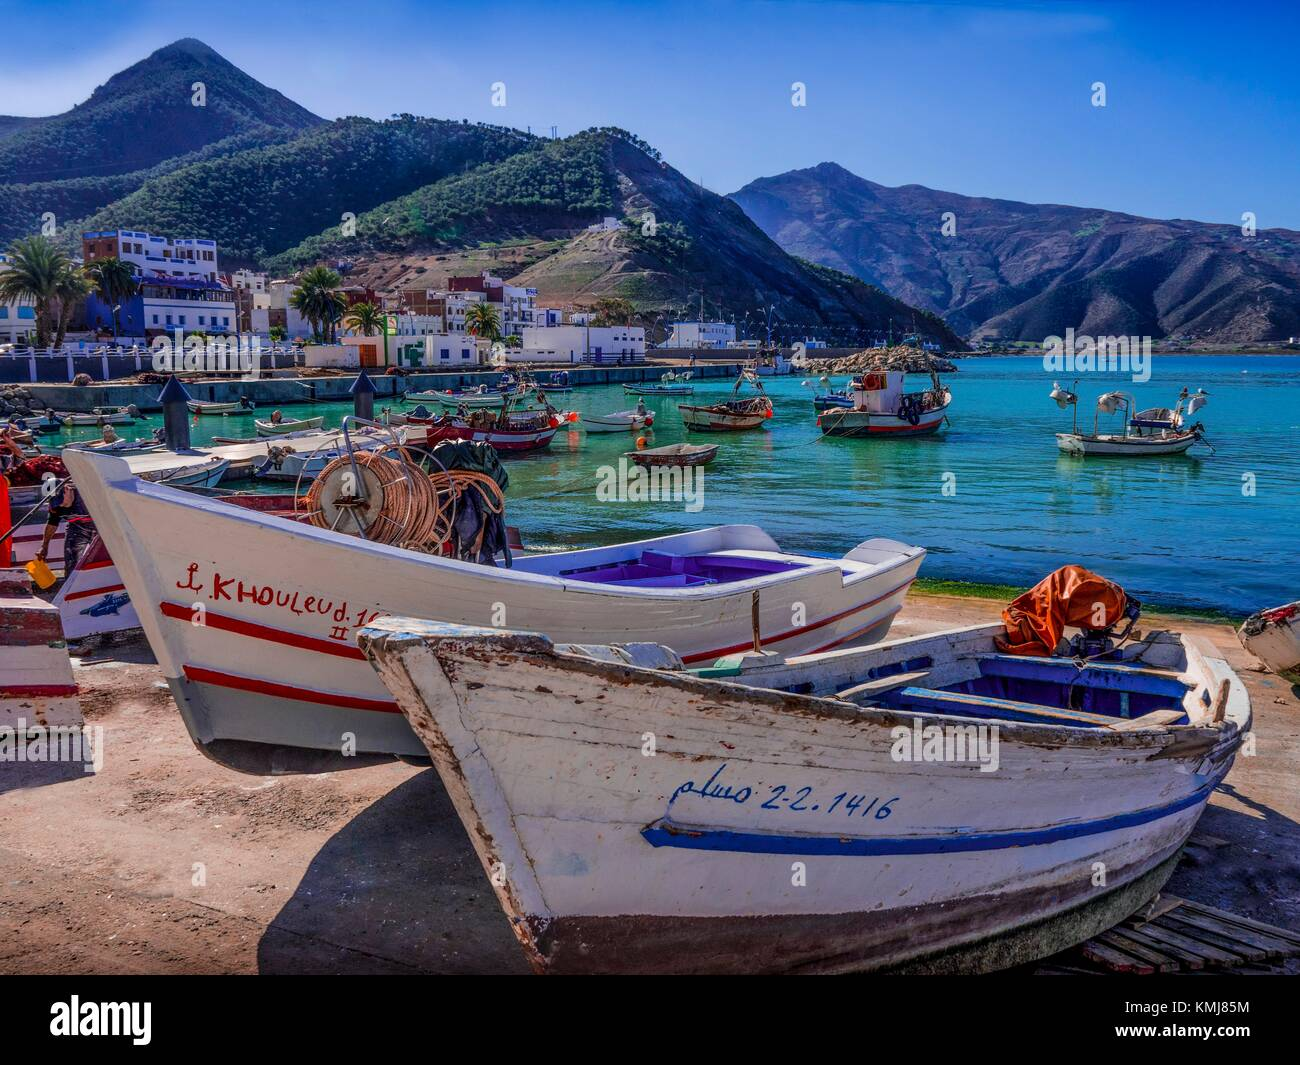 Morocco, Sheba, on the Mediterranean coast. - Stock Image